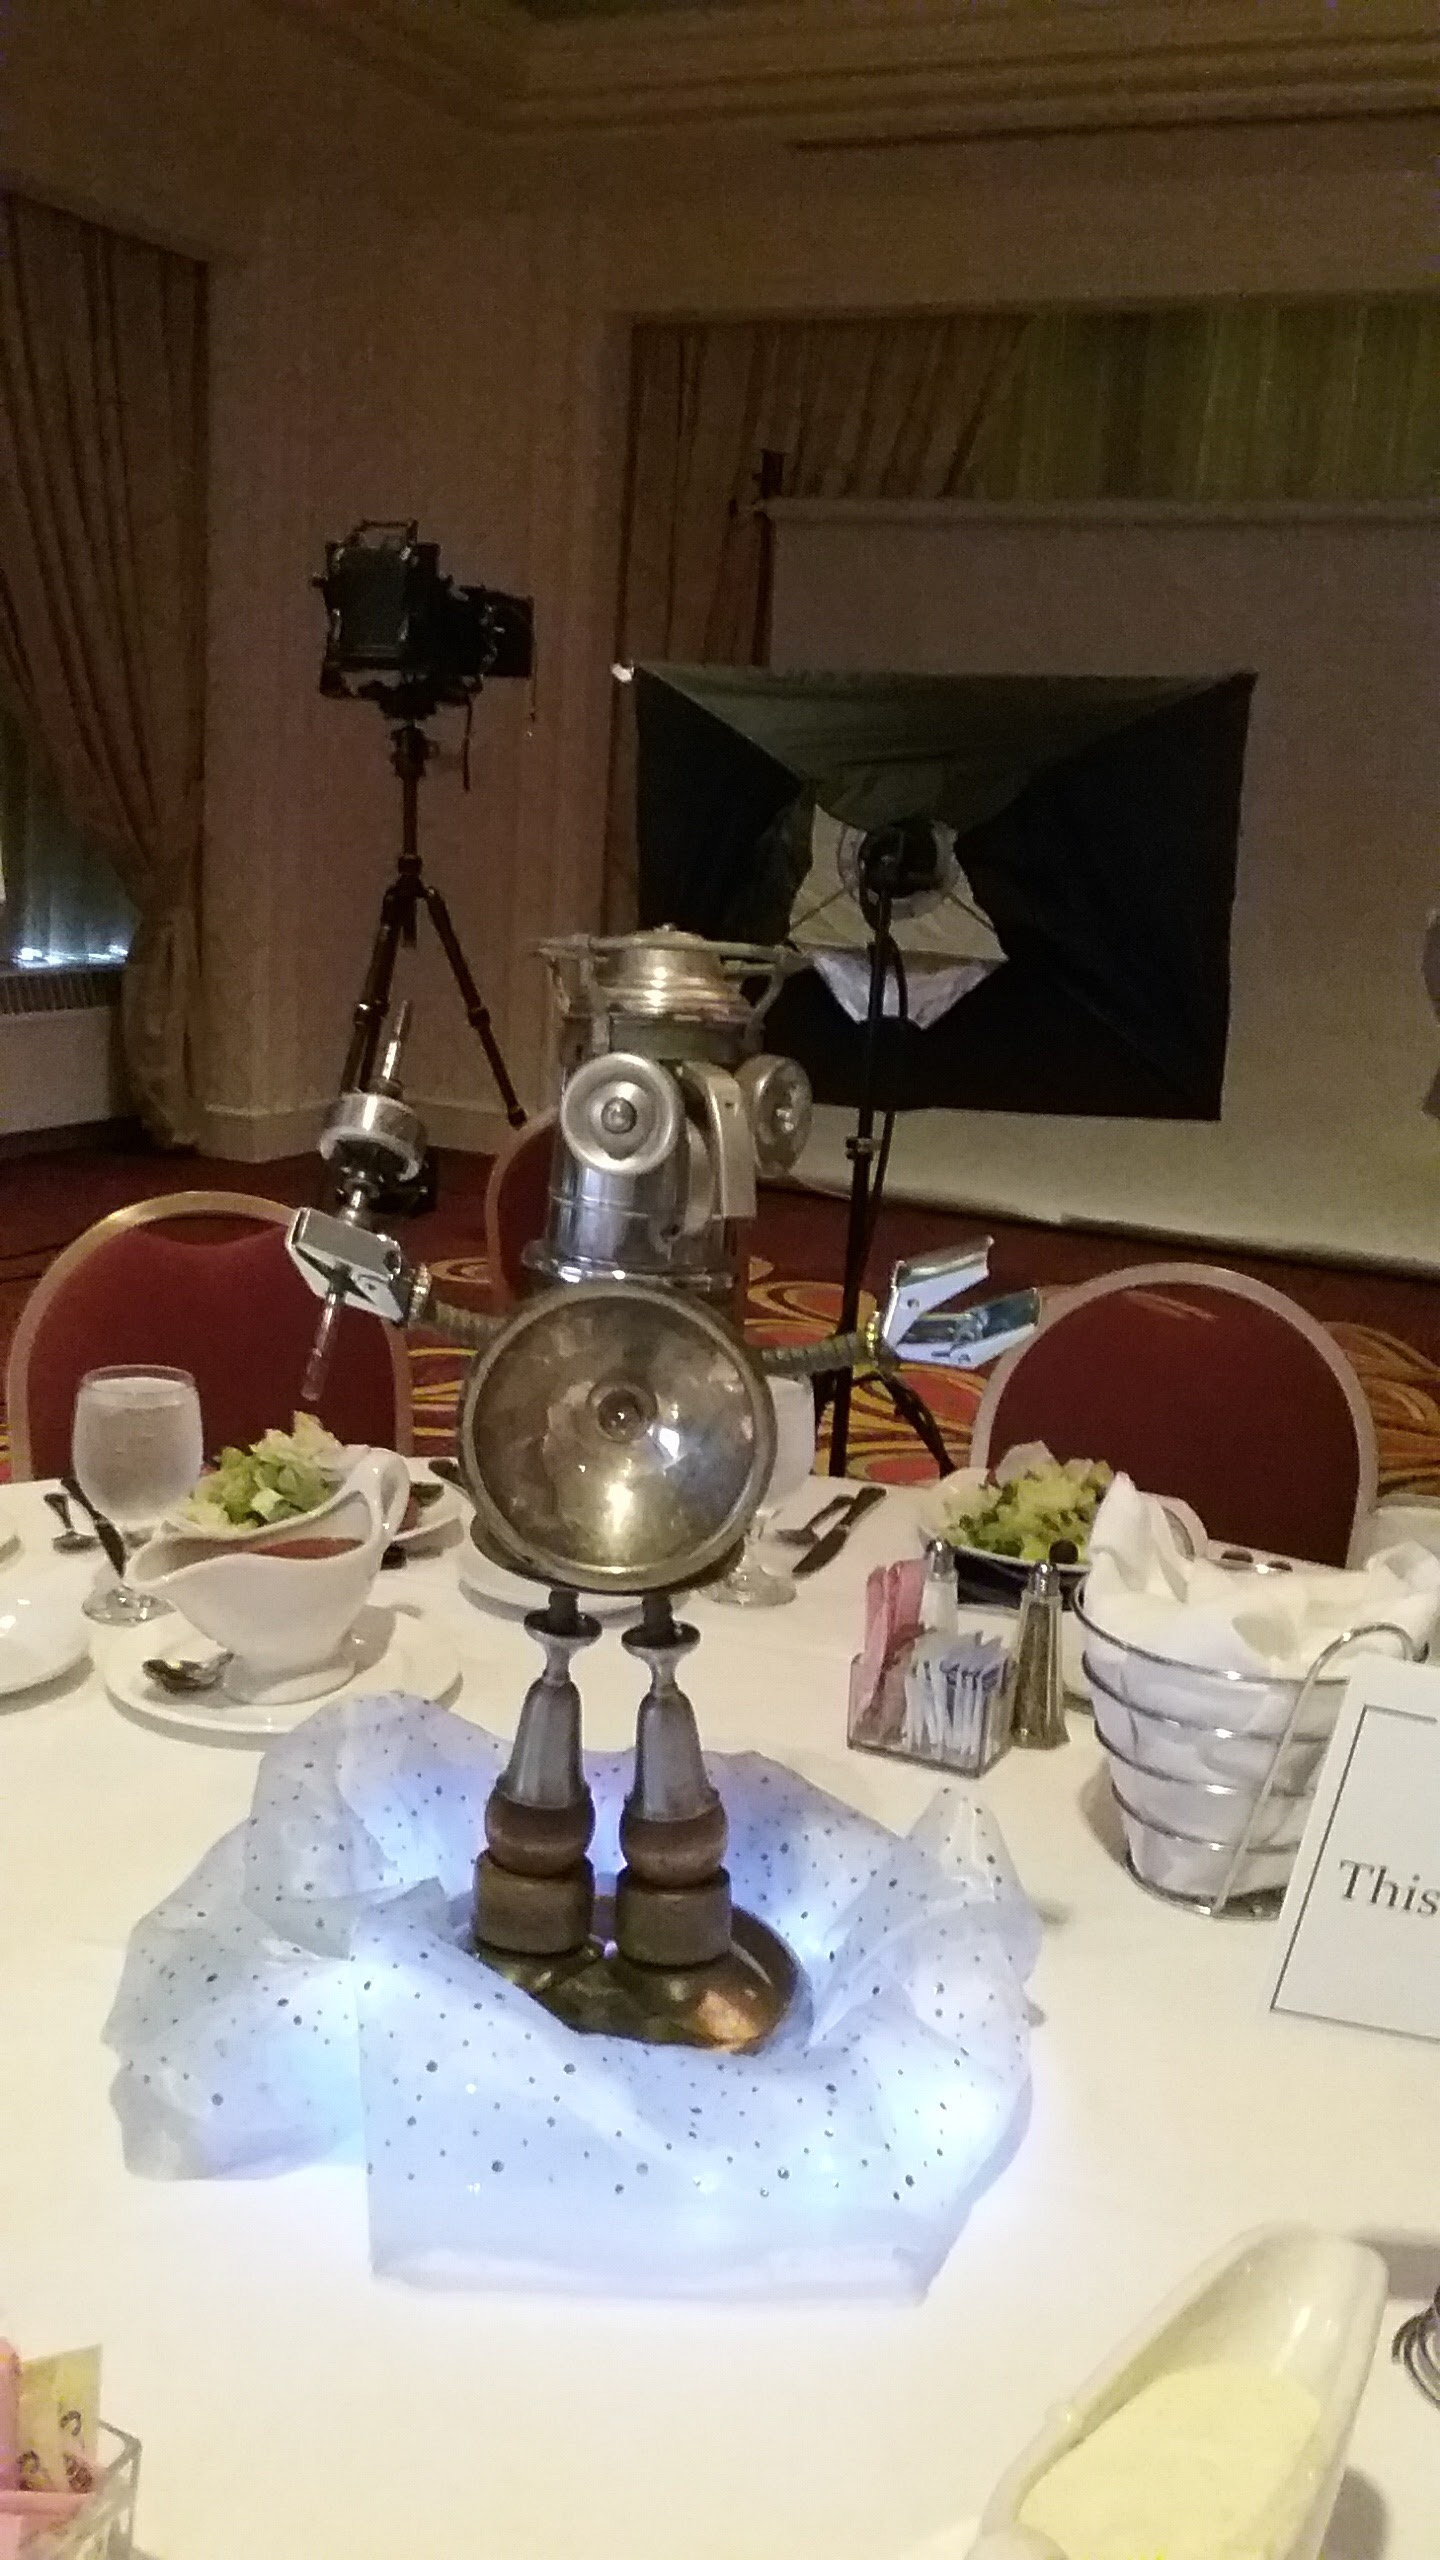 Art robot centerpiece